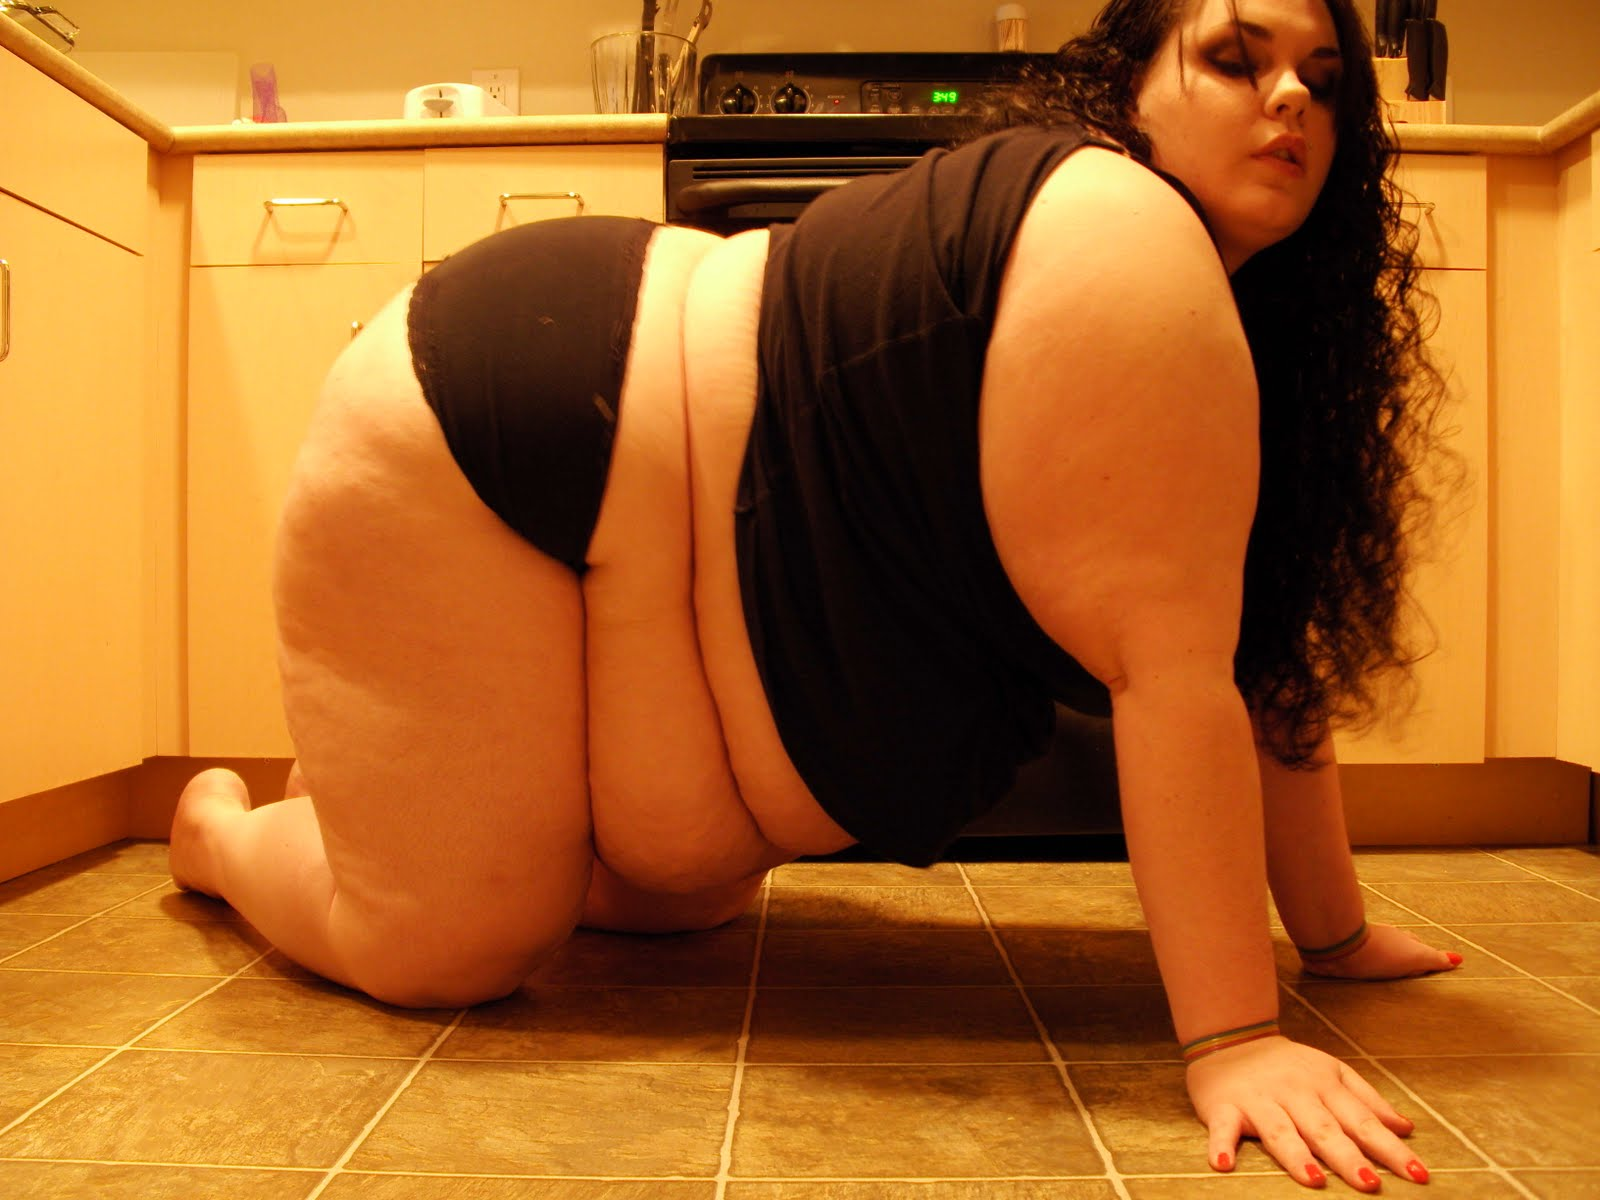 Amatri Camgirl At Allbbwcams She S So Nice It A Busy Time For Us